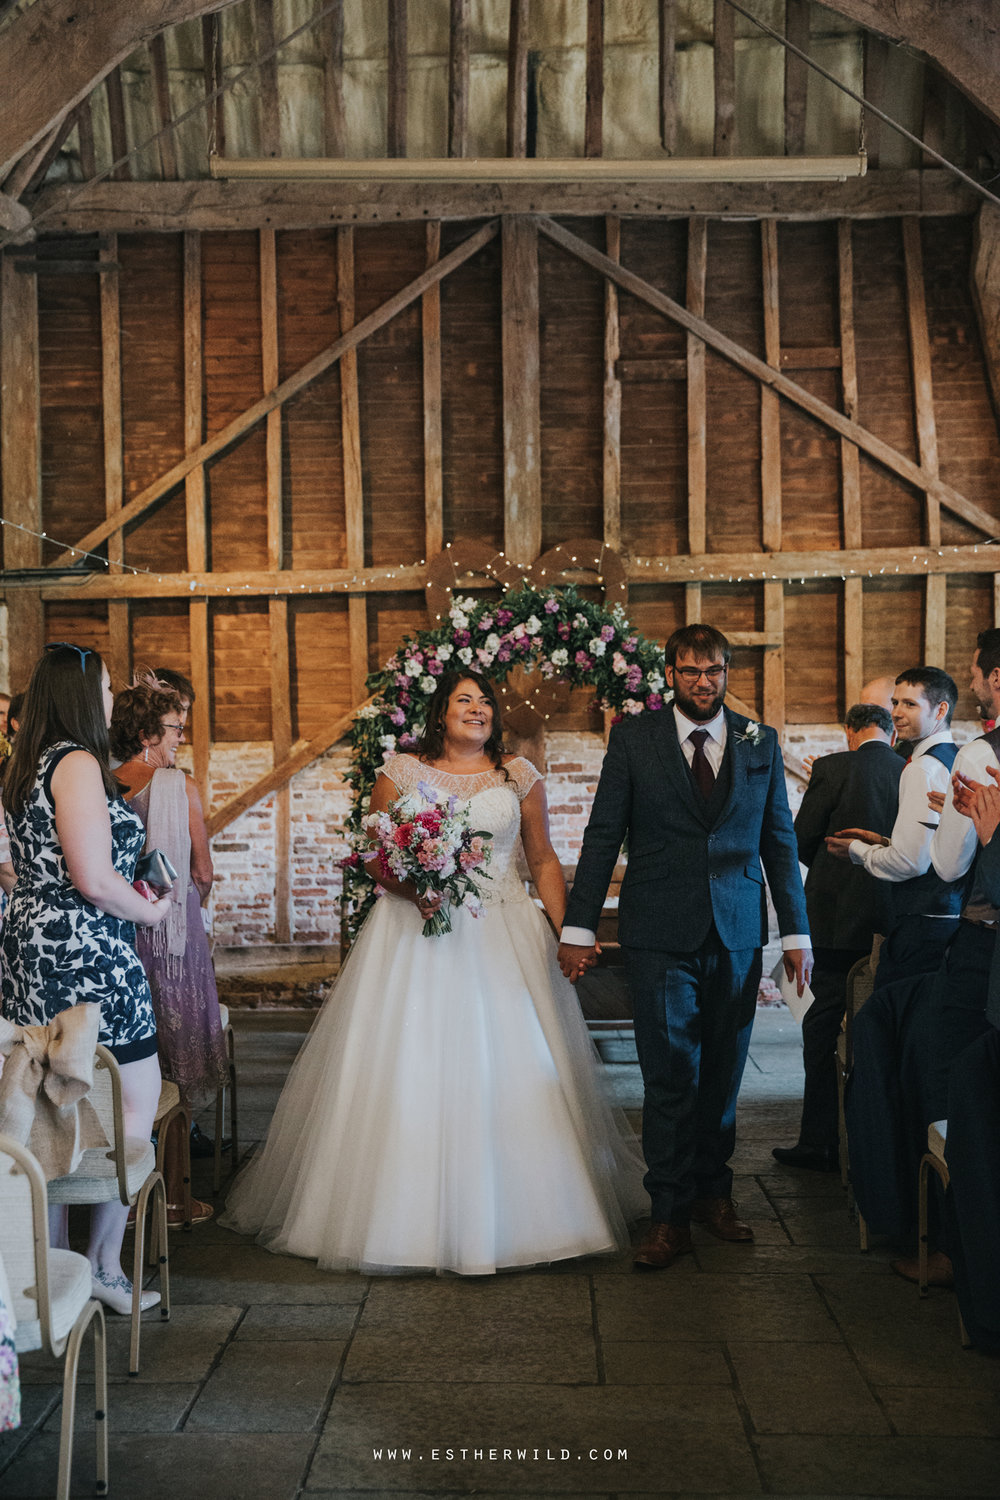 The_Red_Barn_Wedding_Kings_Lynn_Norfolk_IMG_0995.jpg